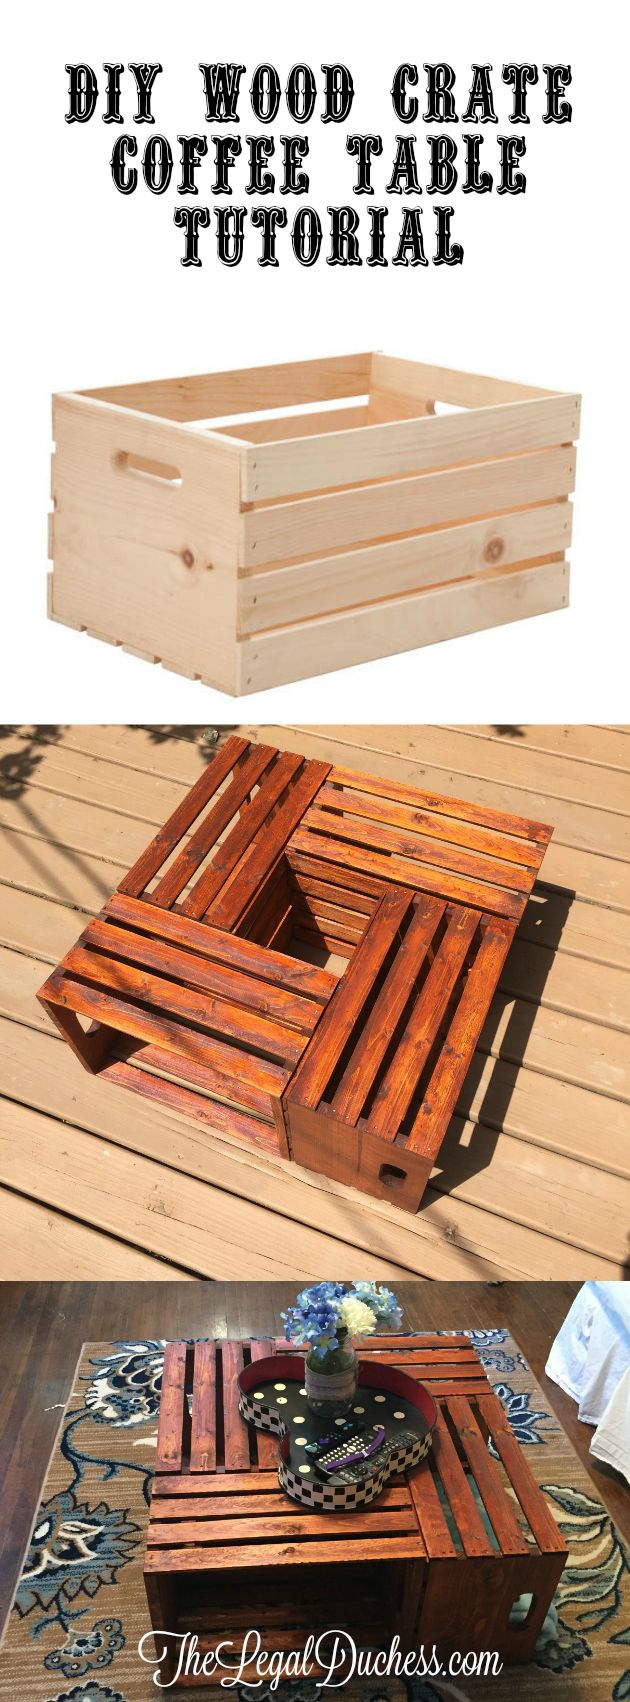 A simple and budget friendly DIY project for a Wood Crate Coffee Table.   Get this for under $32.00 and in just 3 hours!!!